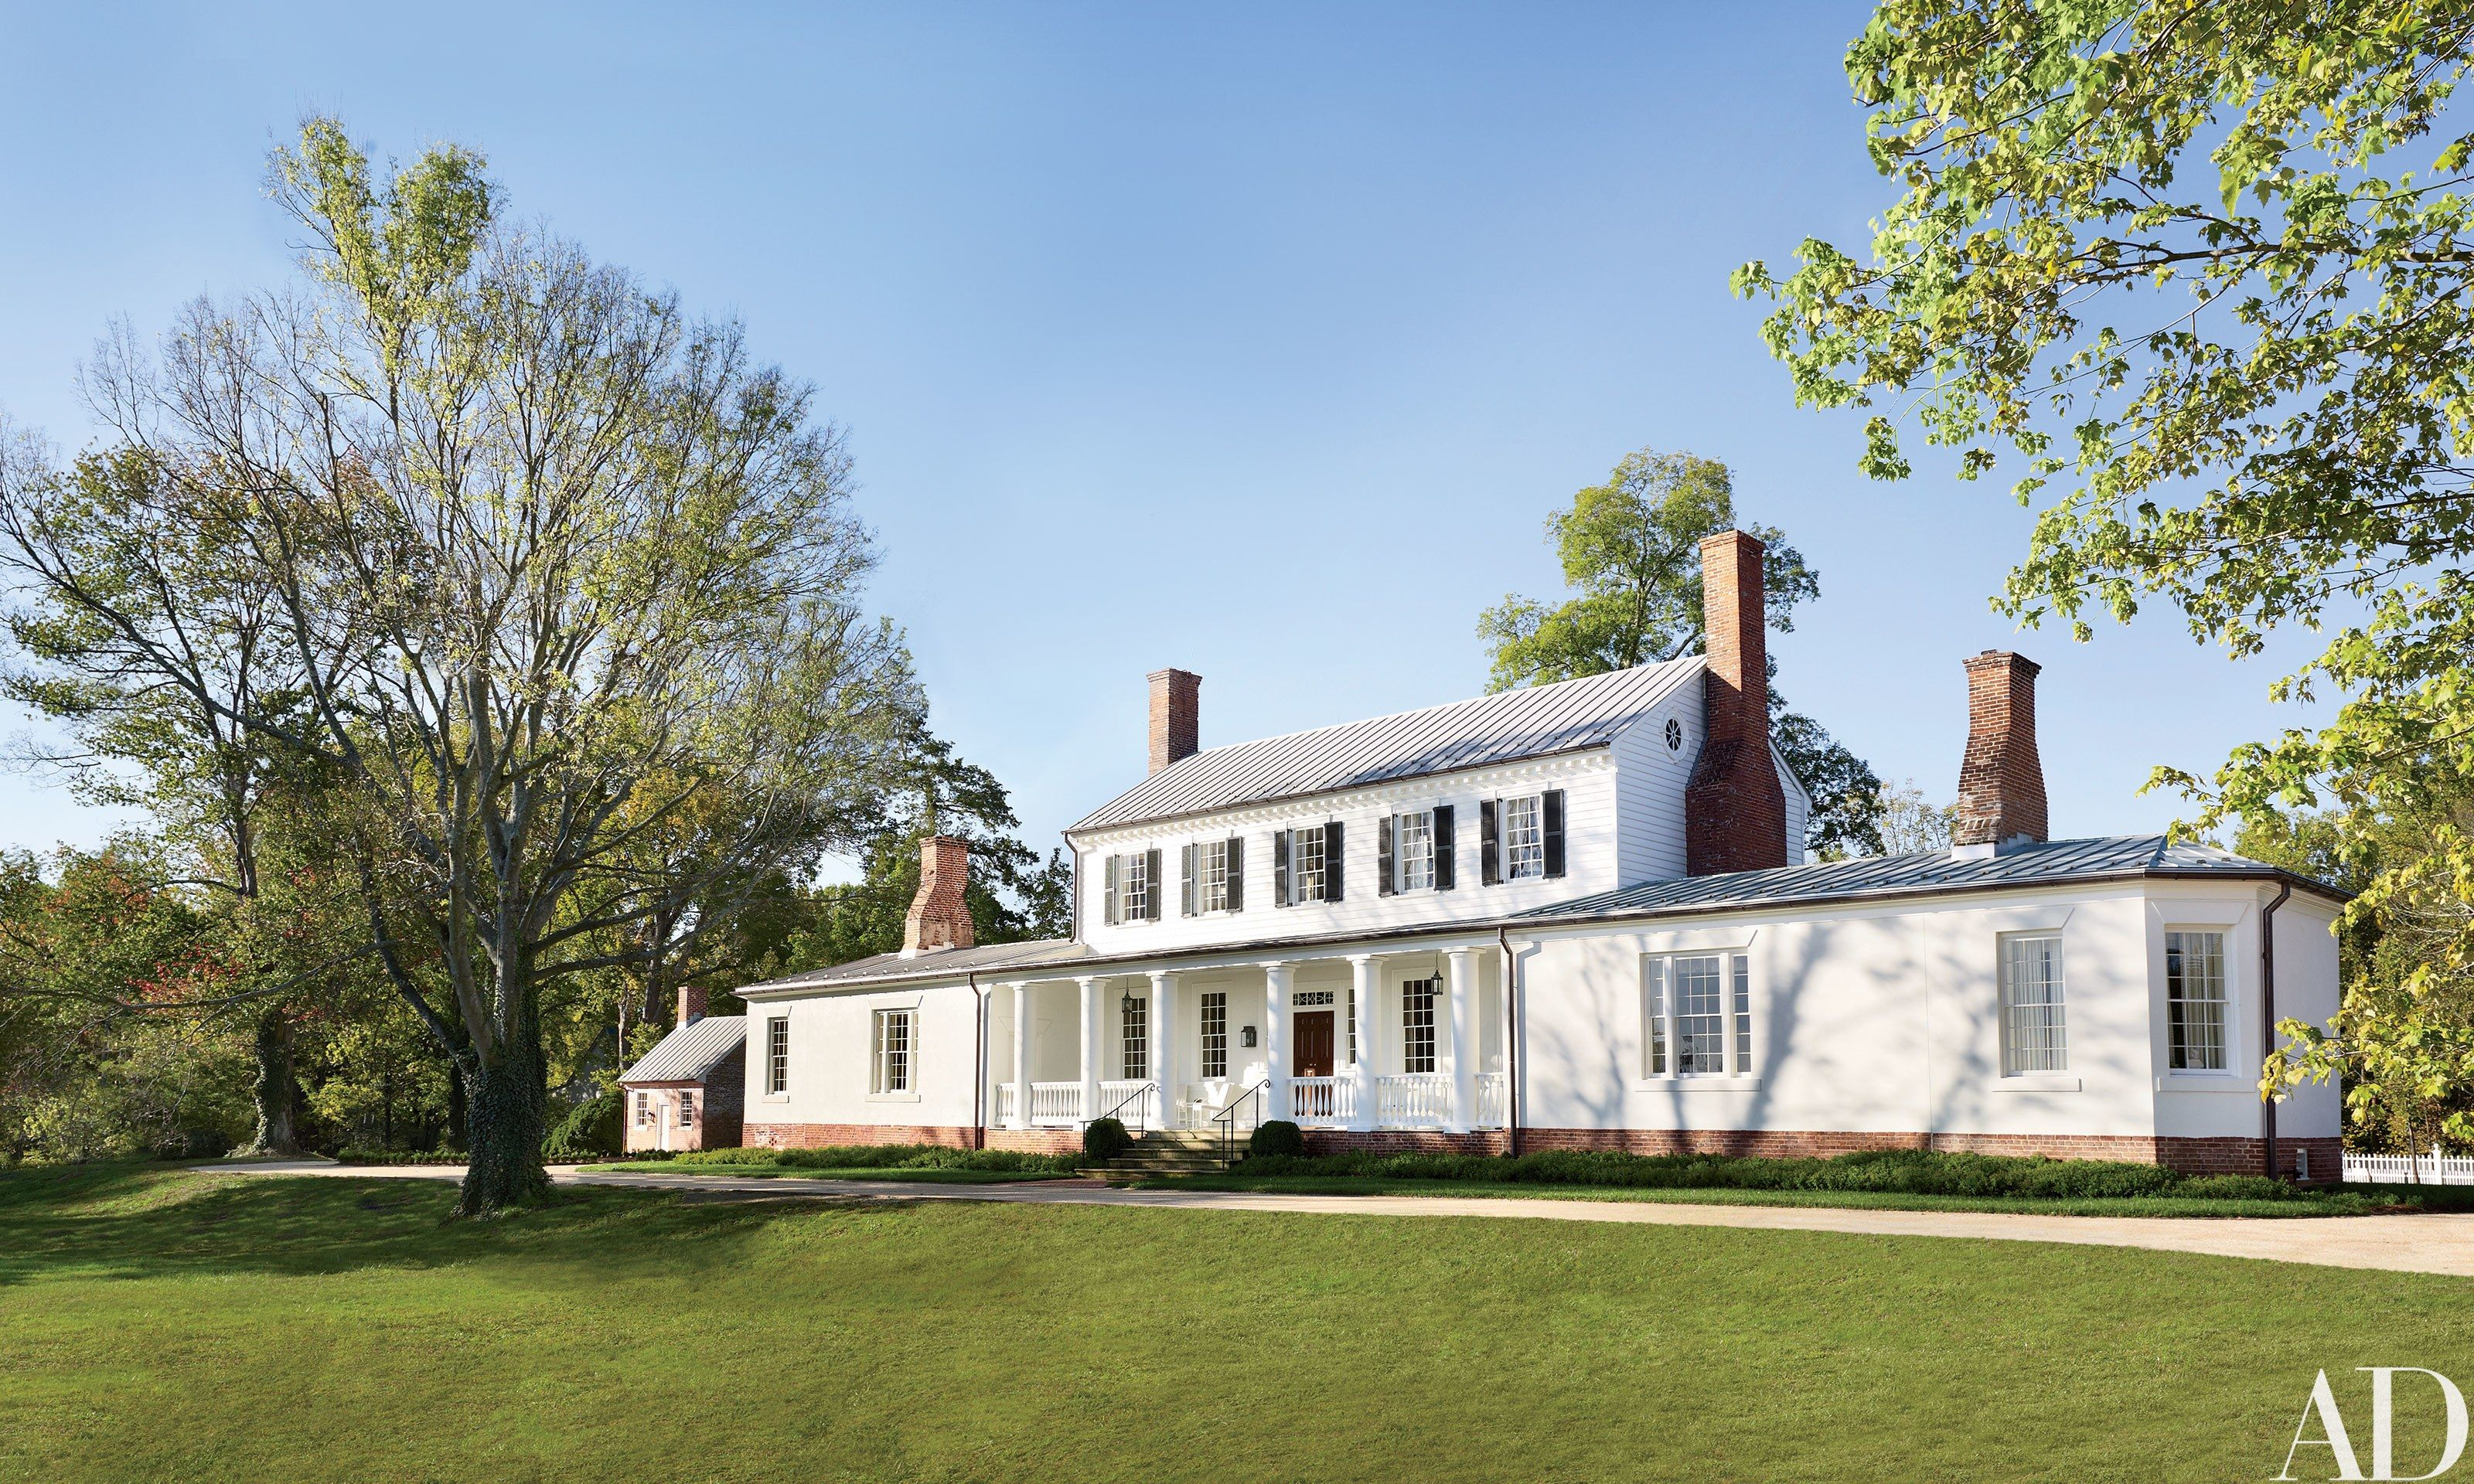 Amelia Handegan Restores The 18th Century Rose Hill Estate In Virginia With Images White Exterior Paint Rose Hill White Exterior Houses